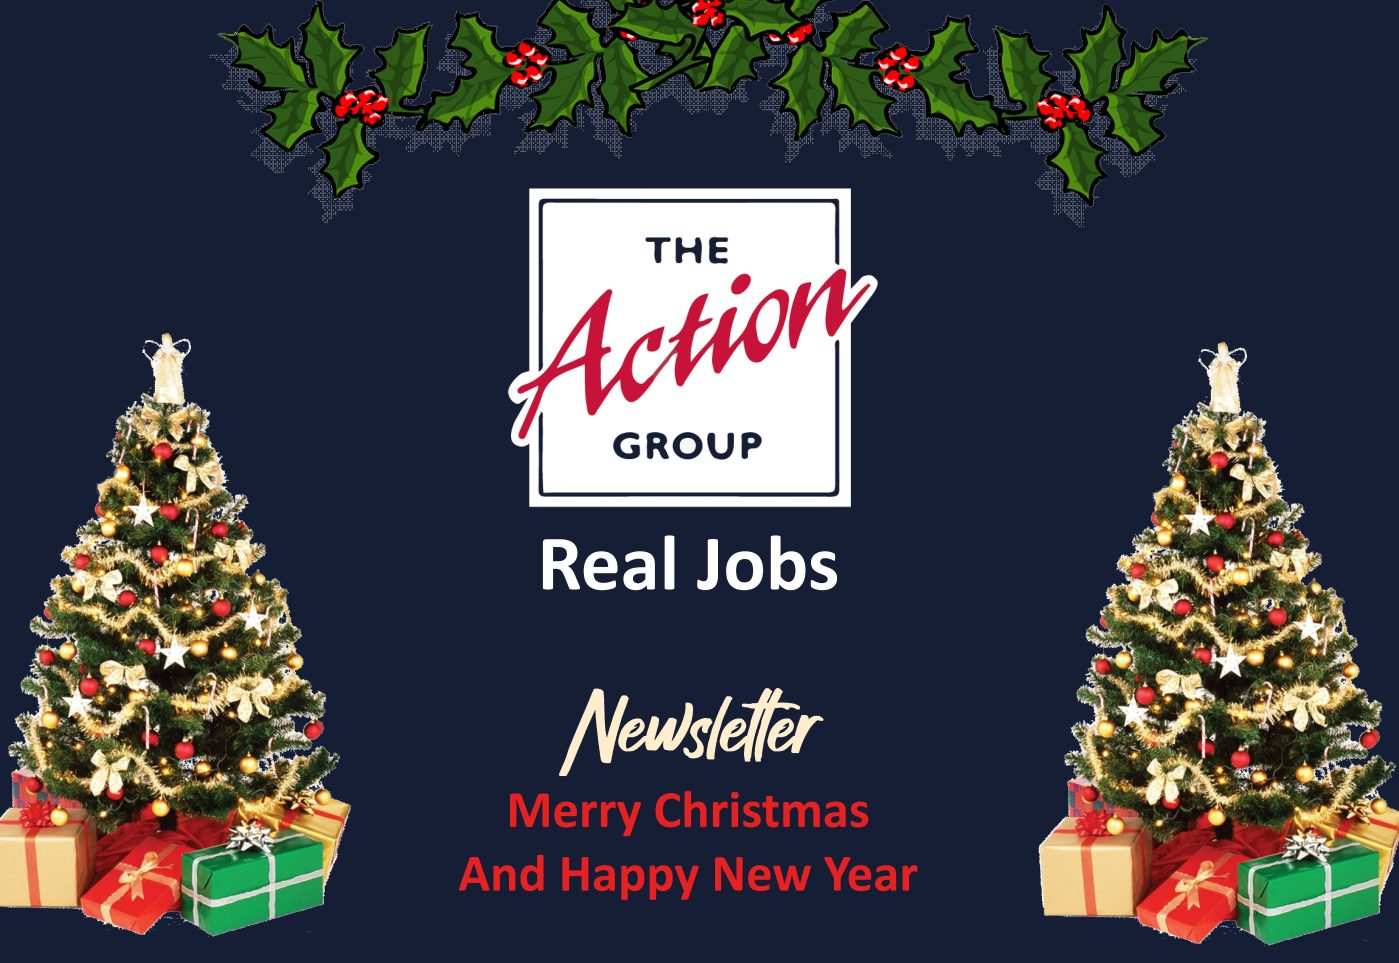 Real Jobs Newsletter cover page